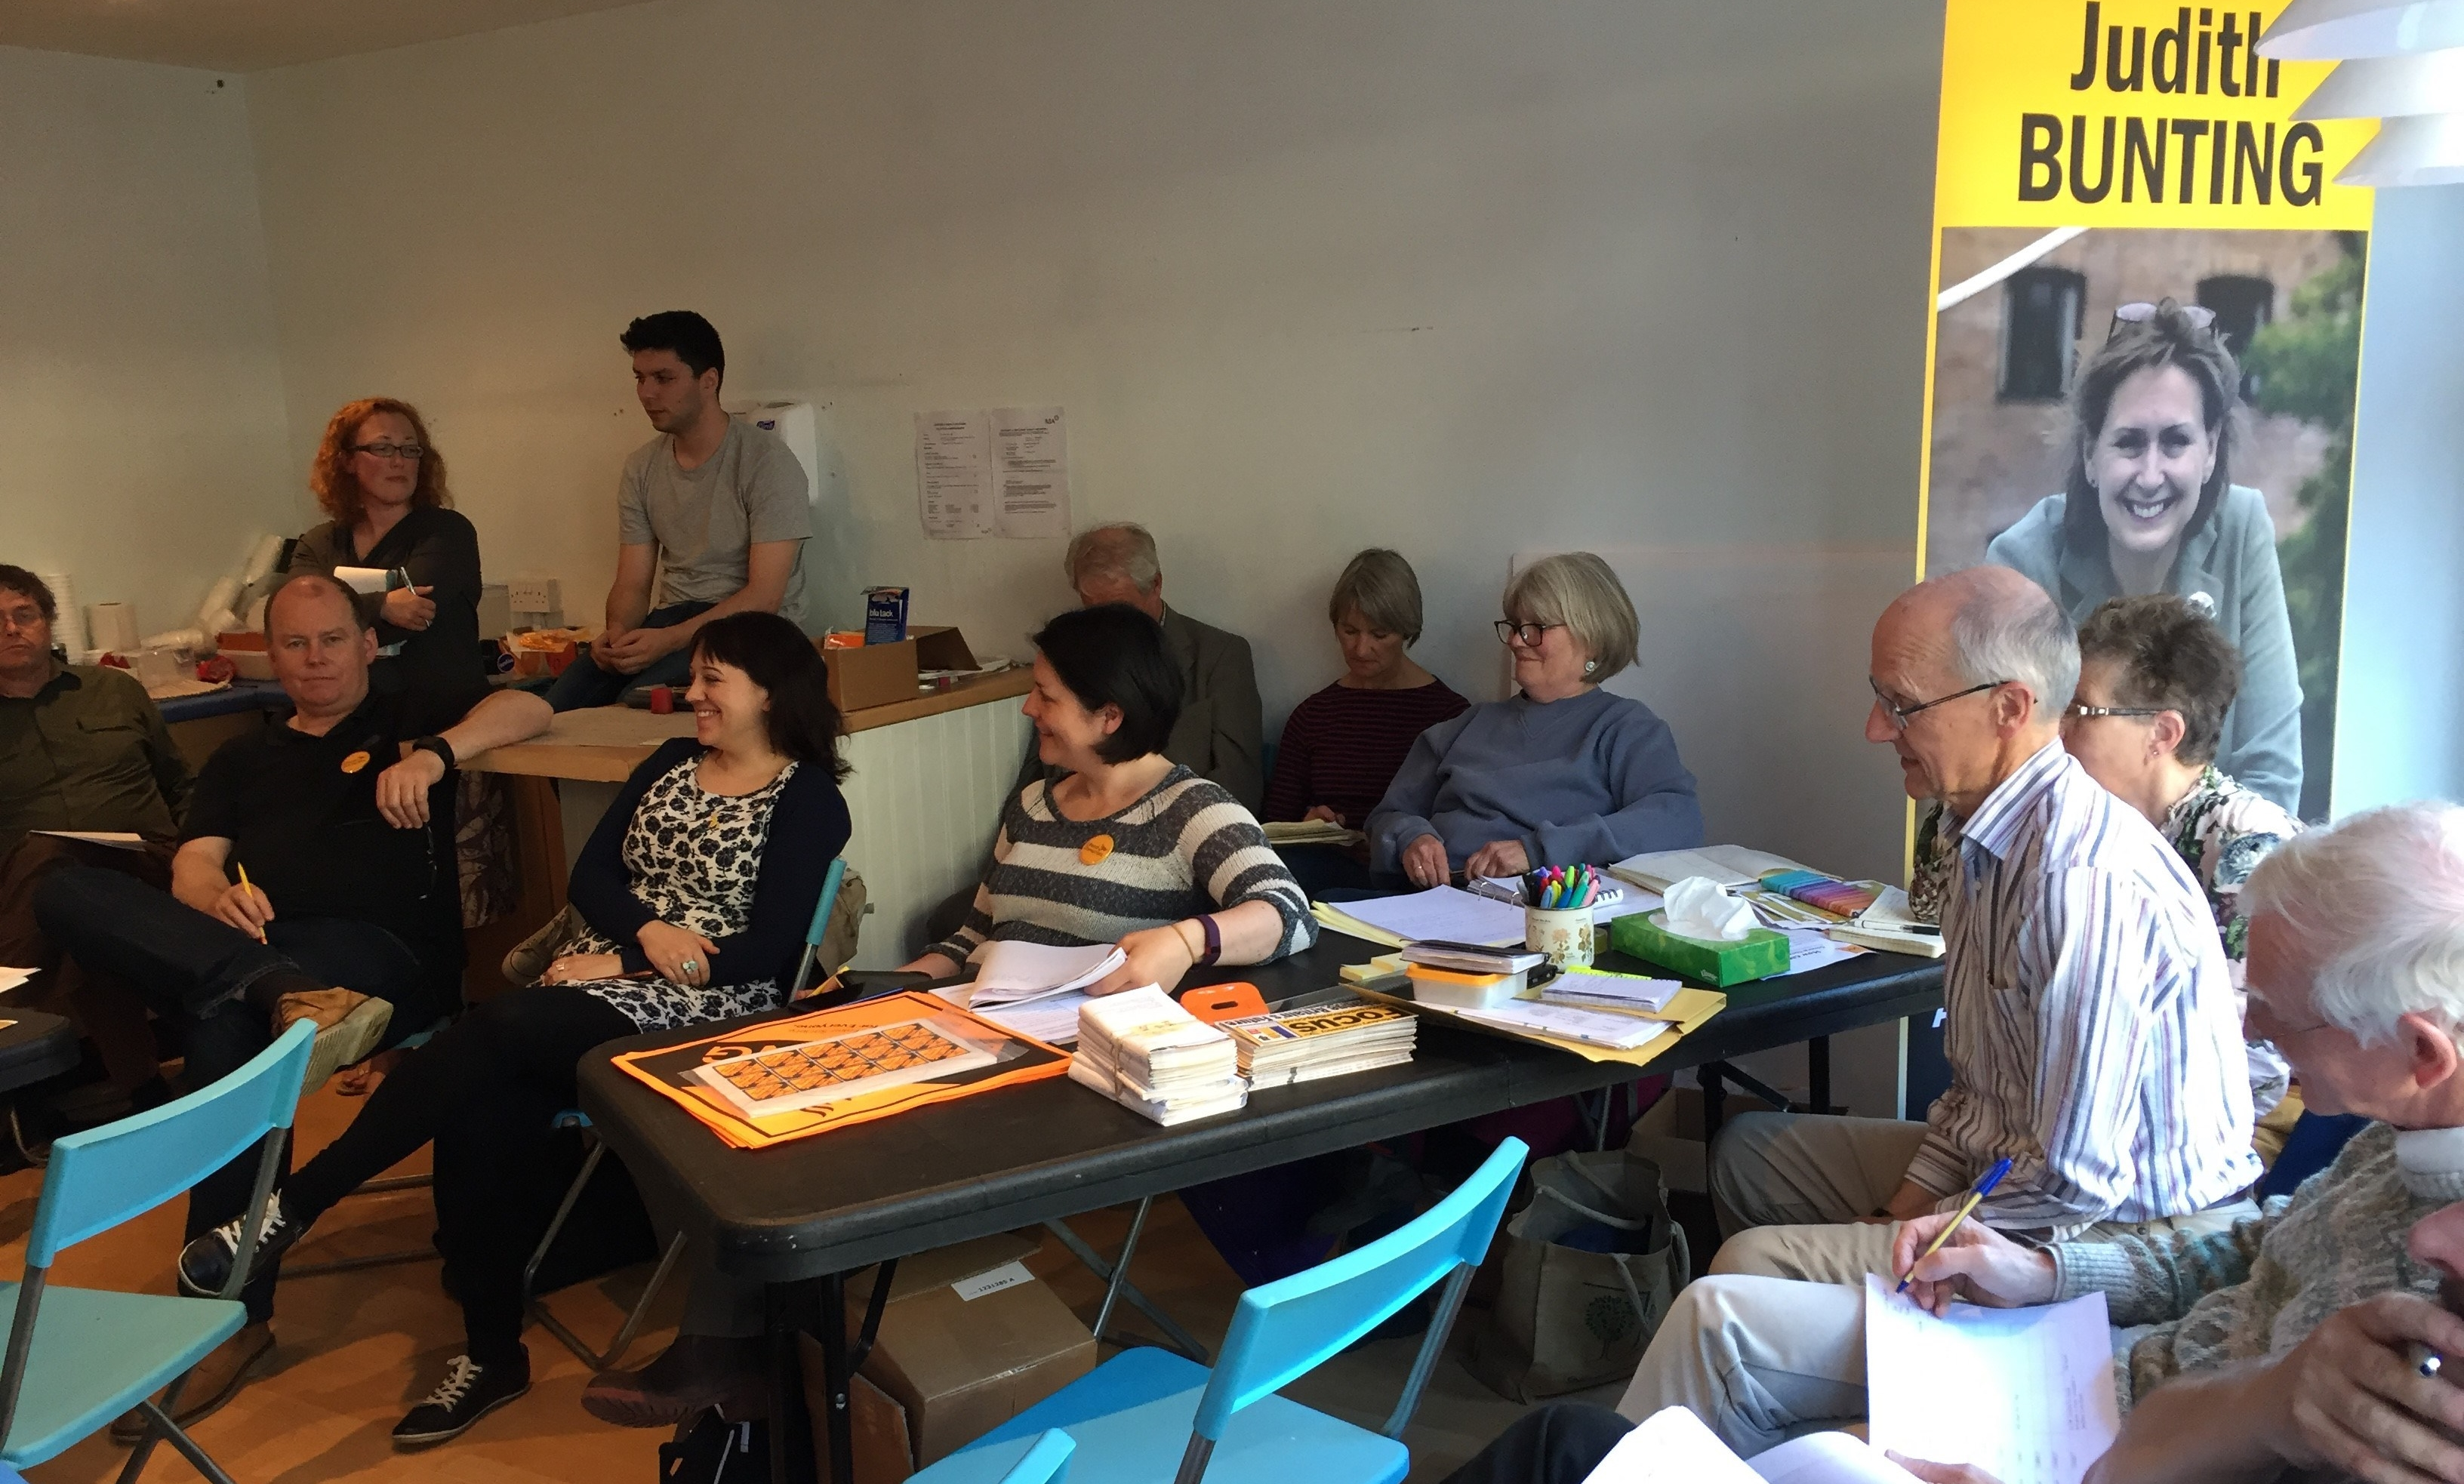 Campaign team meeting at Lib Dem Campaign HQ in Newbury